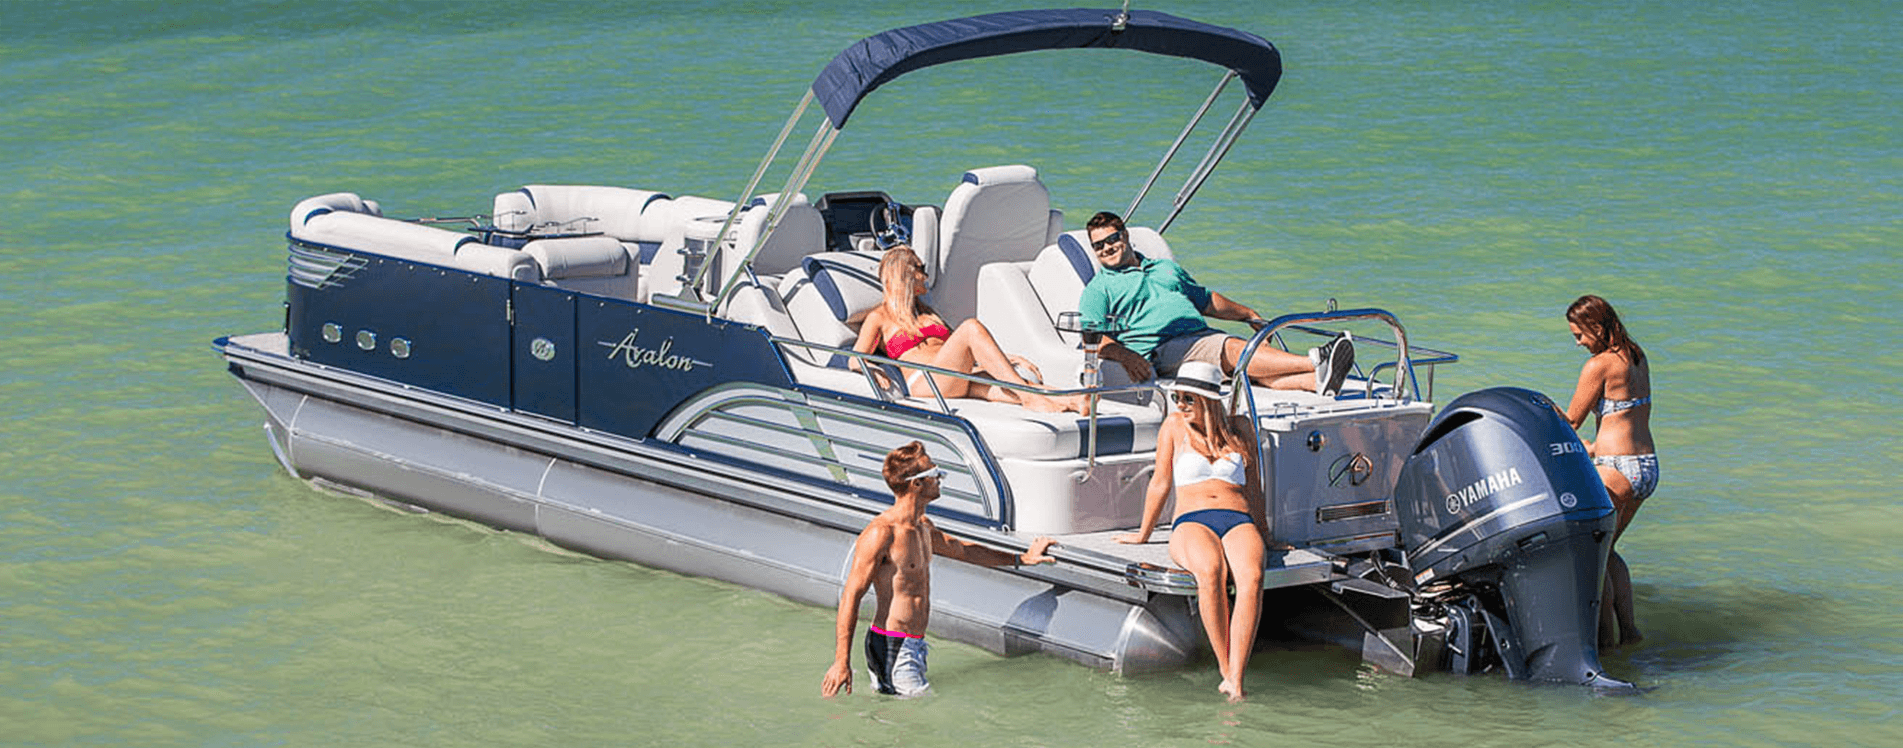 Avalon pontoon boats for sale